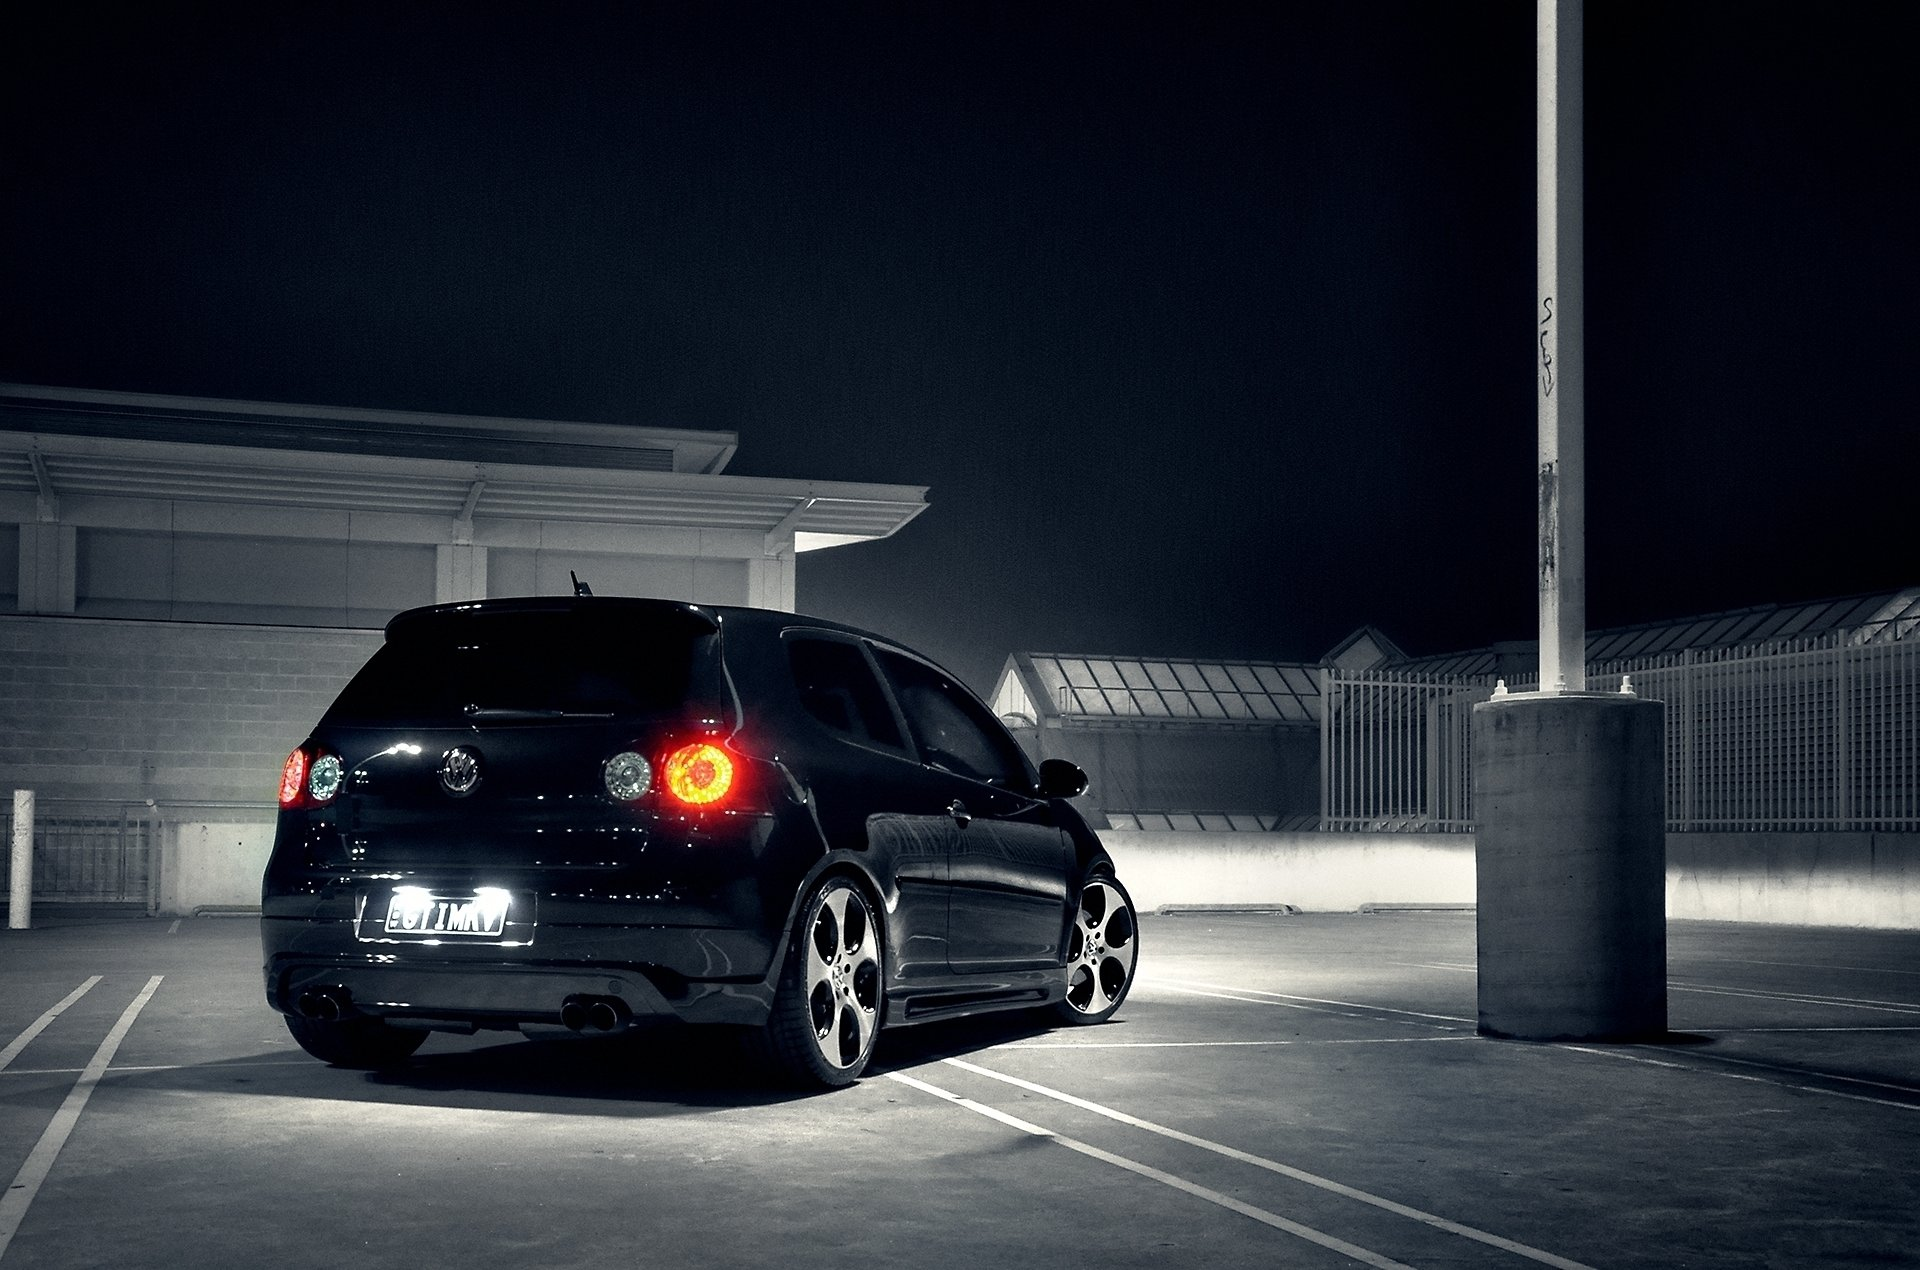 volkswagen full hd wallpaper and background image | 1920x1270 | id